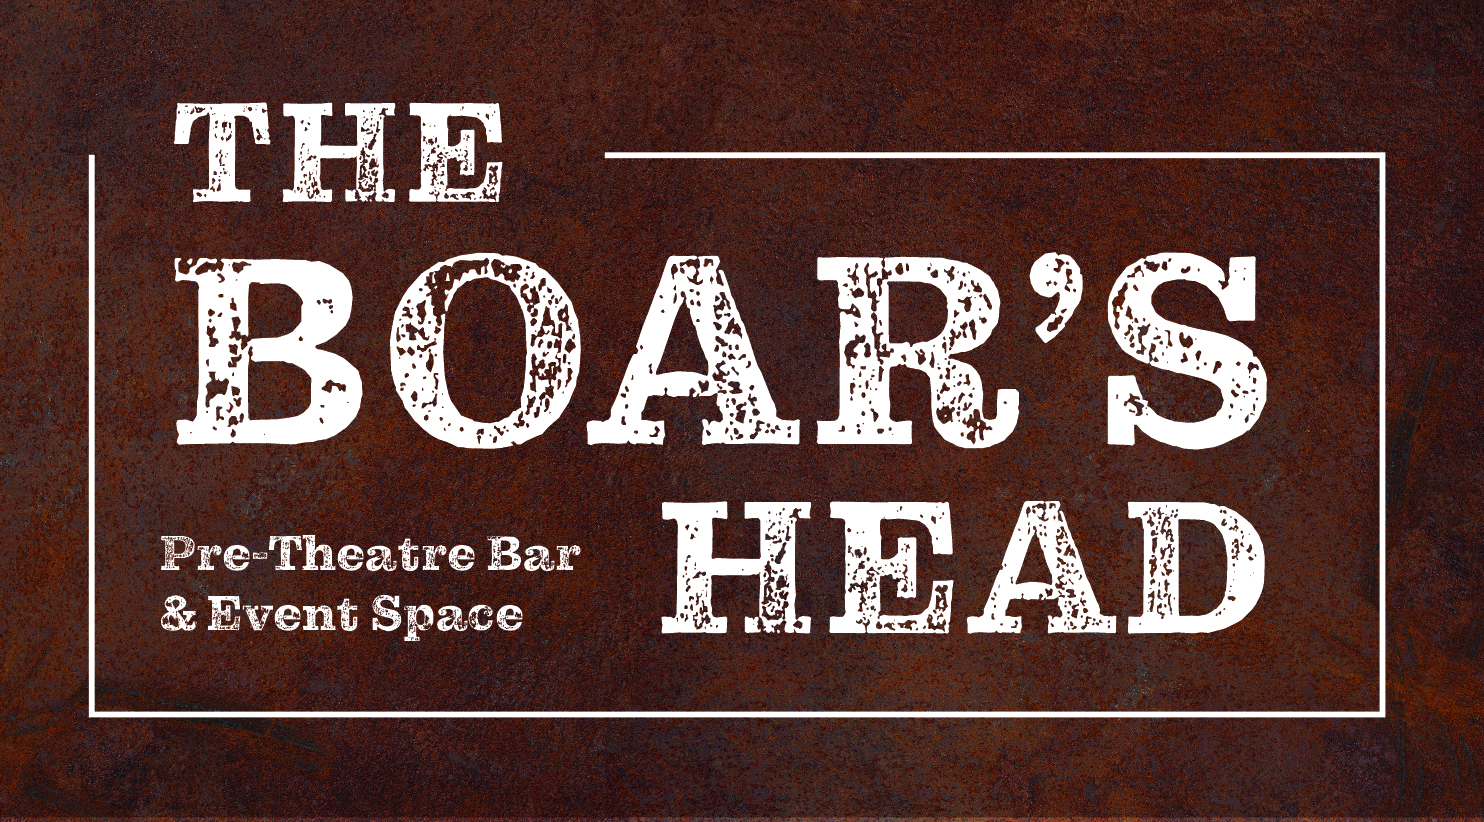 The Boar's Head logo